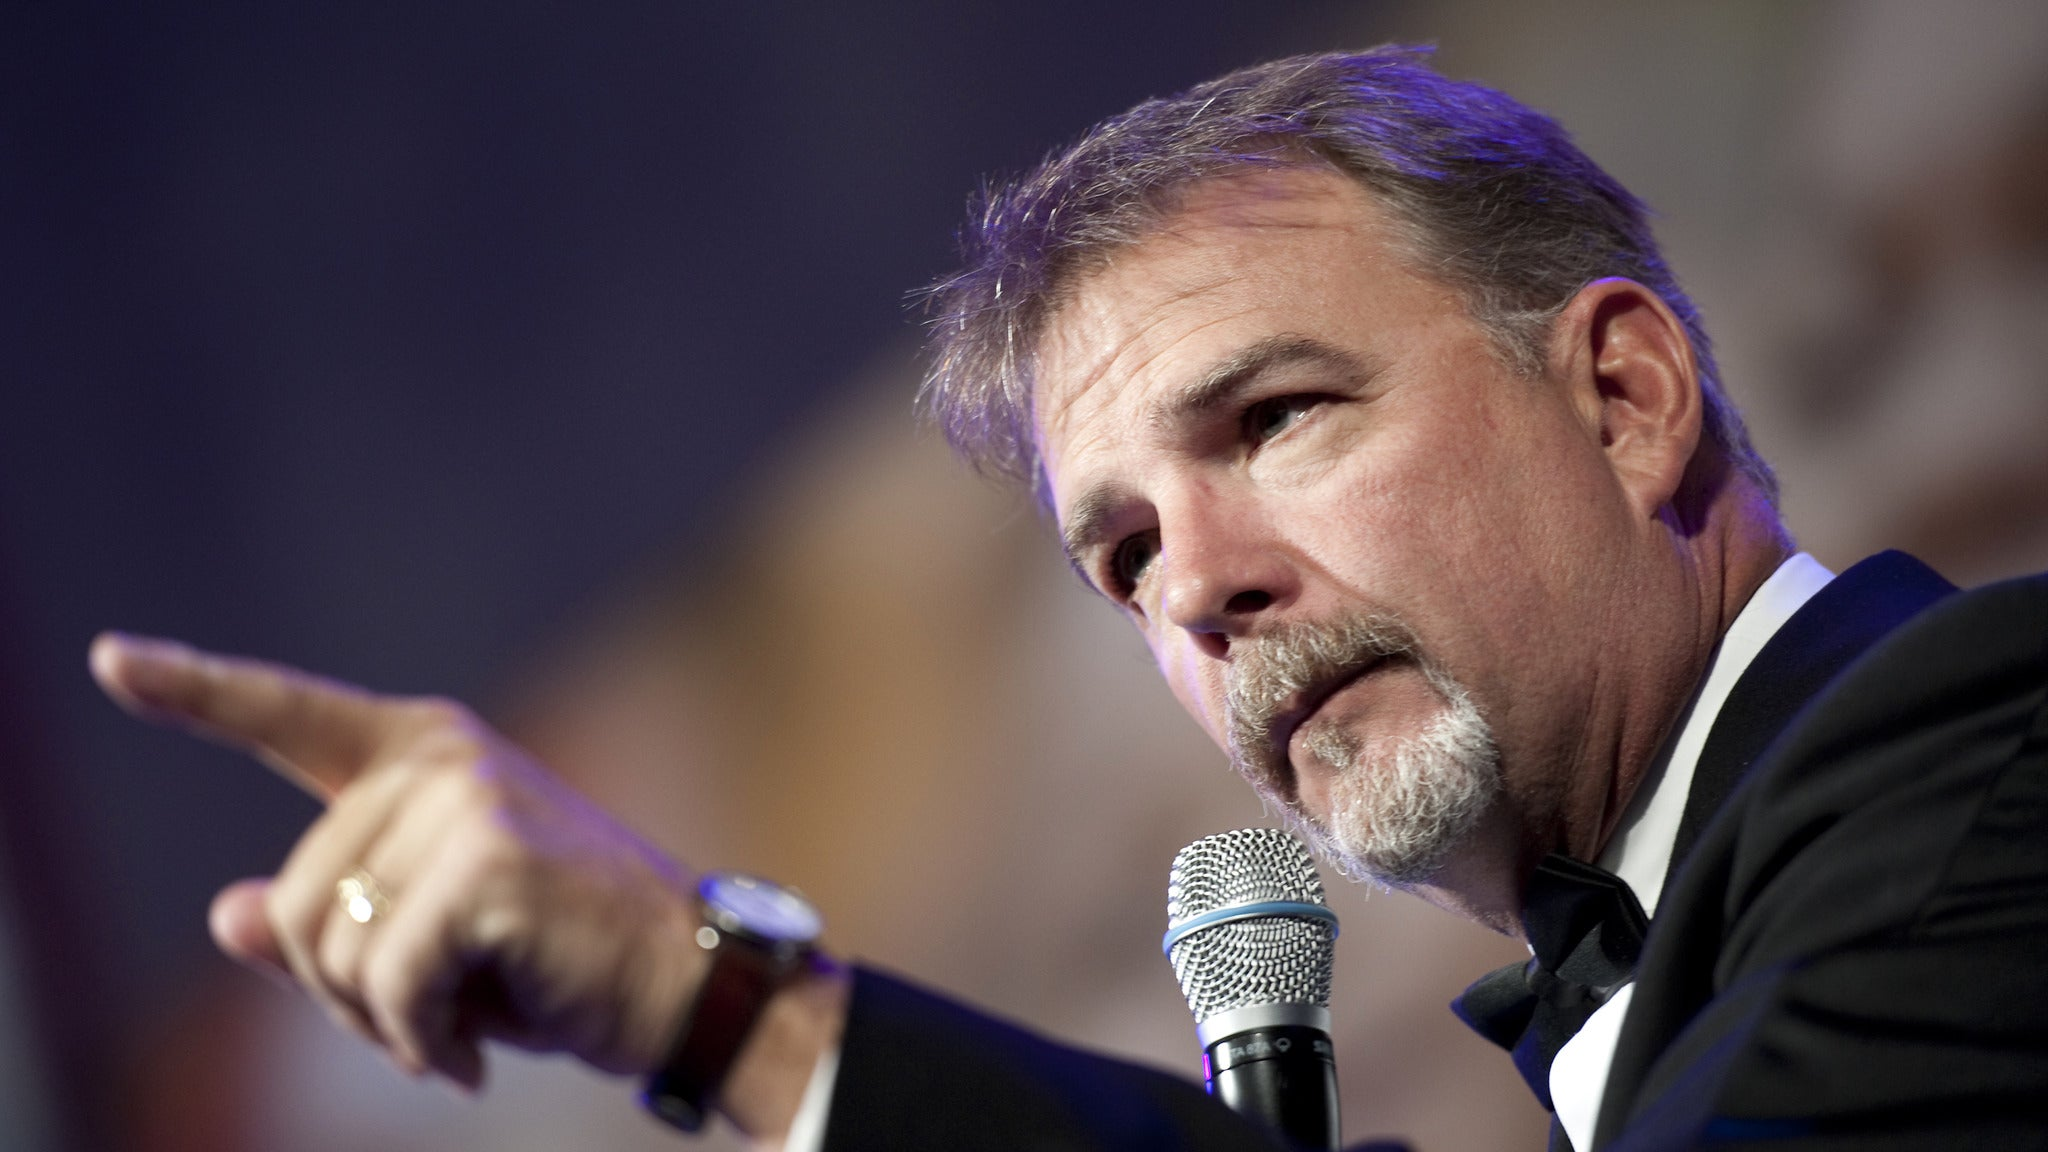 Bill Engvall at Ruth Eckerd Hall